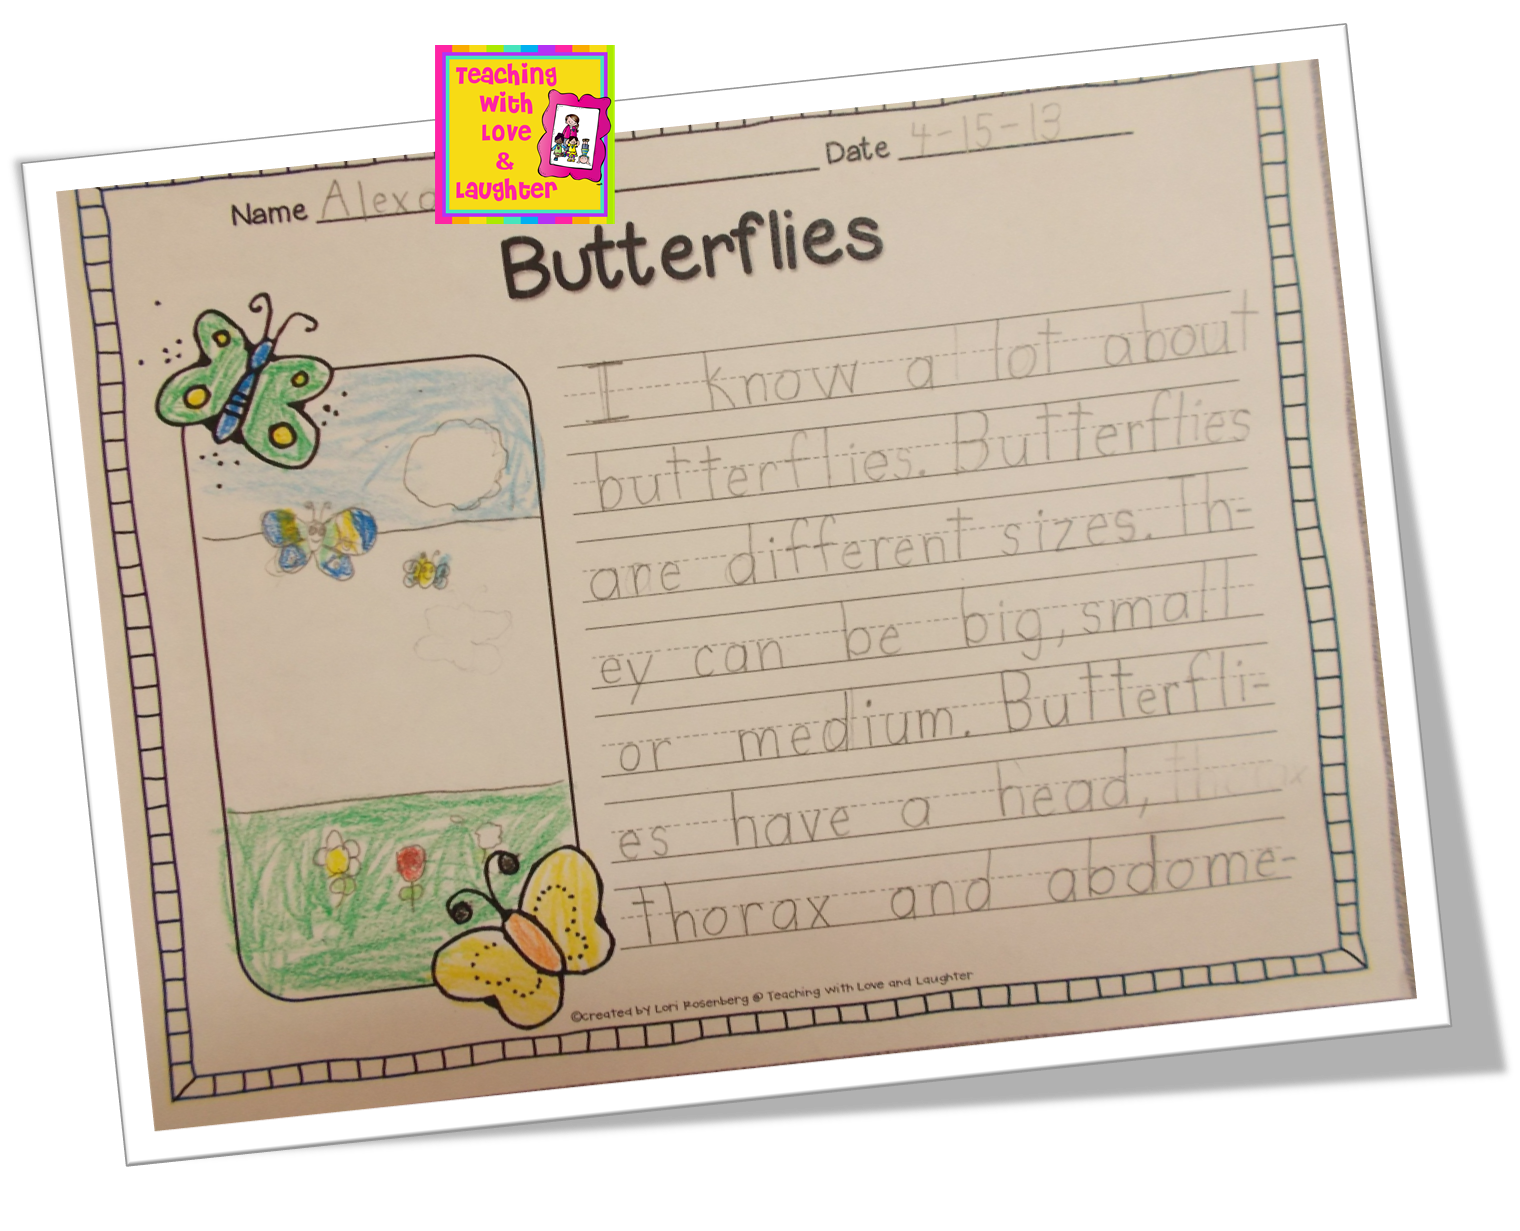 essay on butterfly essay on ldquo butterfly rdquo in hindi essay on teaching love and laughter second grade interviewsthey made beautiful butterflies to go their essays but